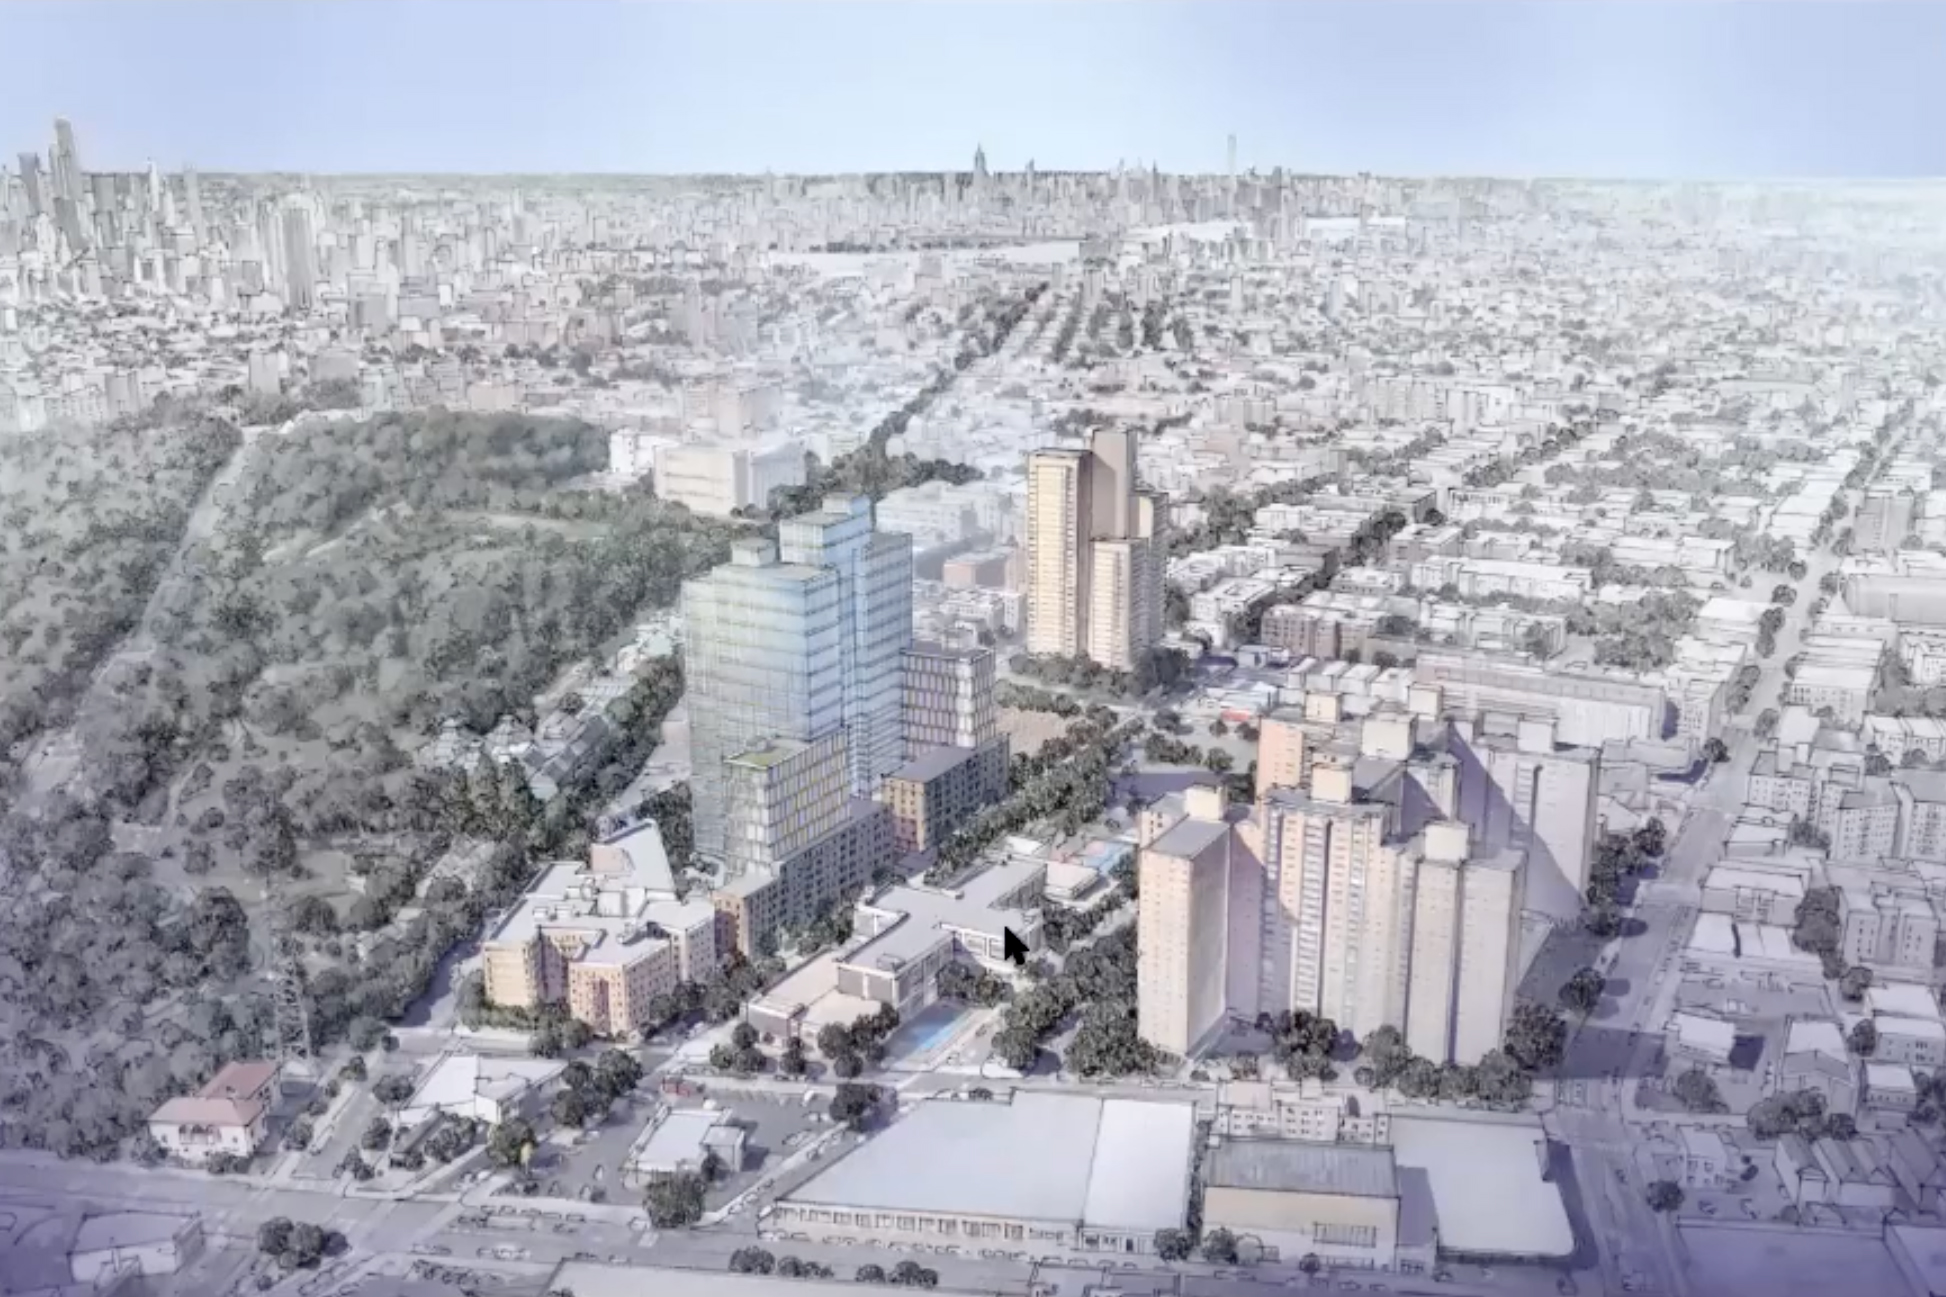 A rendering from a presentation to Community Board 9 on a proposed new development in Crown Heights.